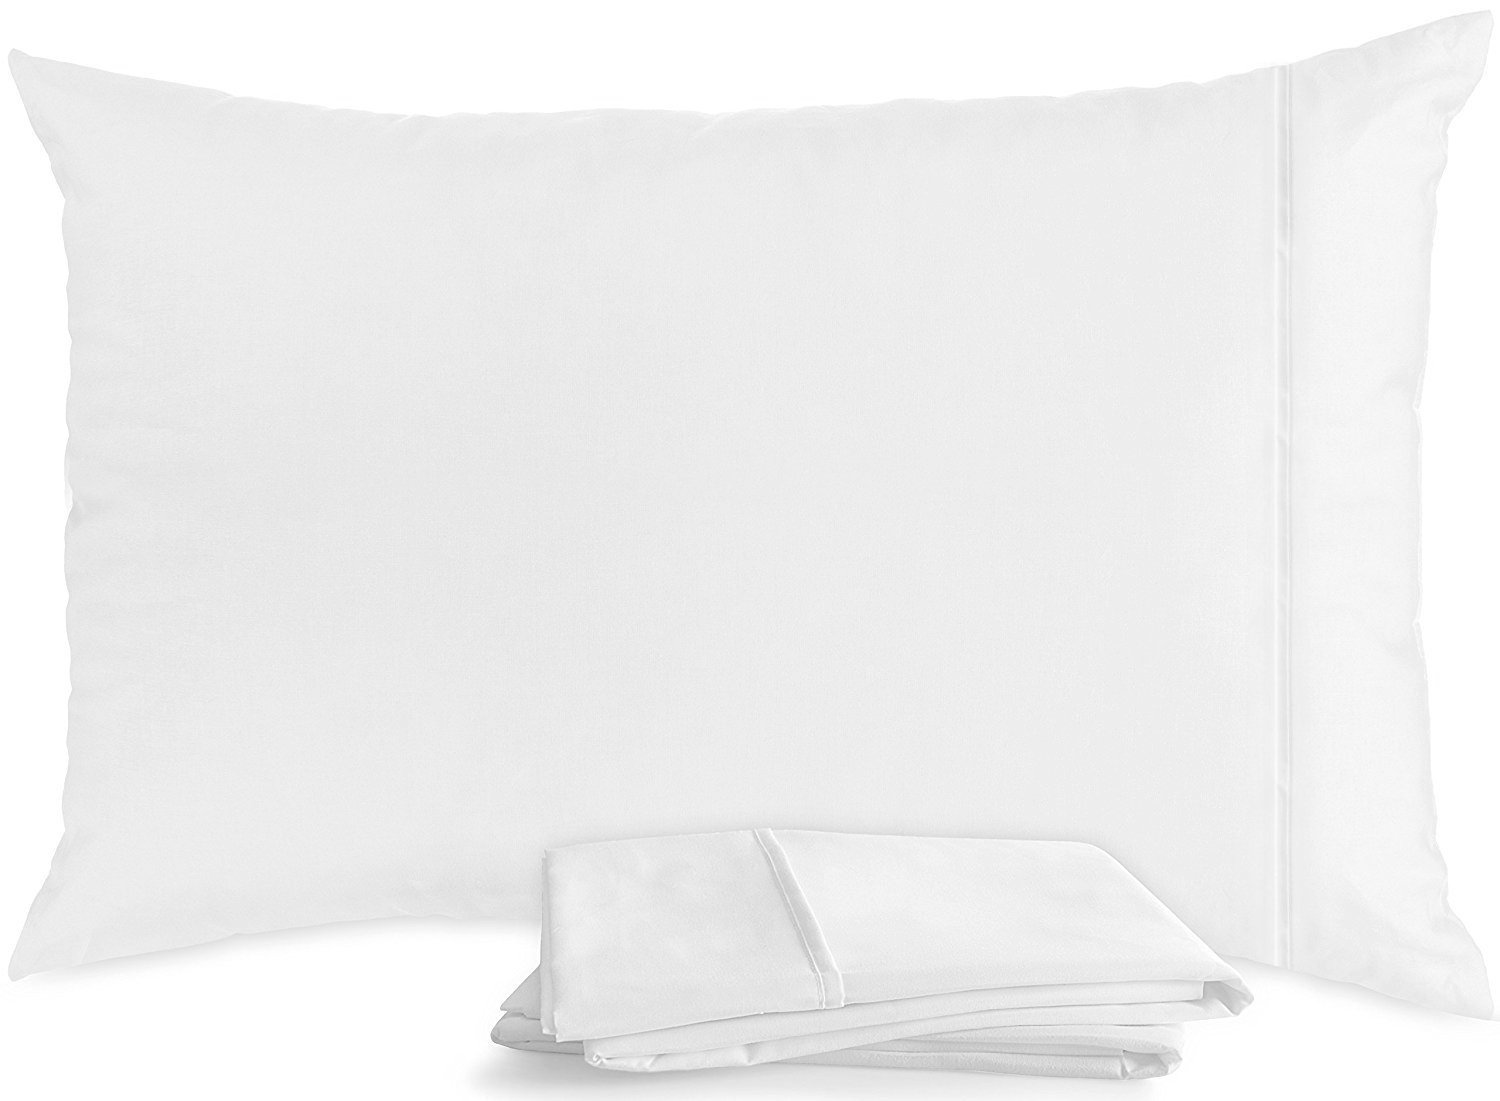 Queen White Set of Dozen Pillowcases - by Utopia Bedding